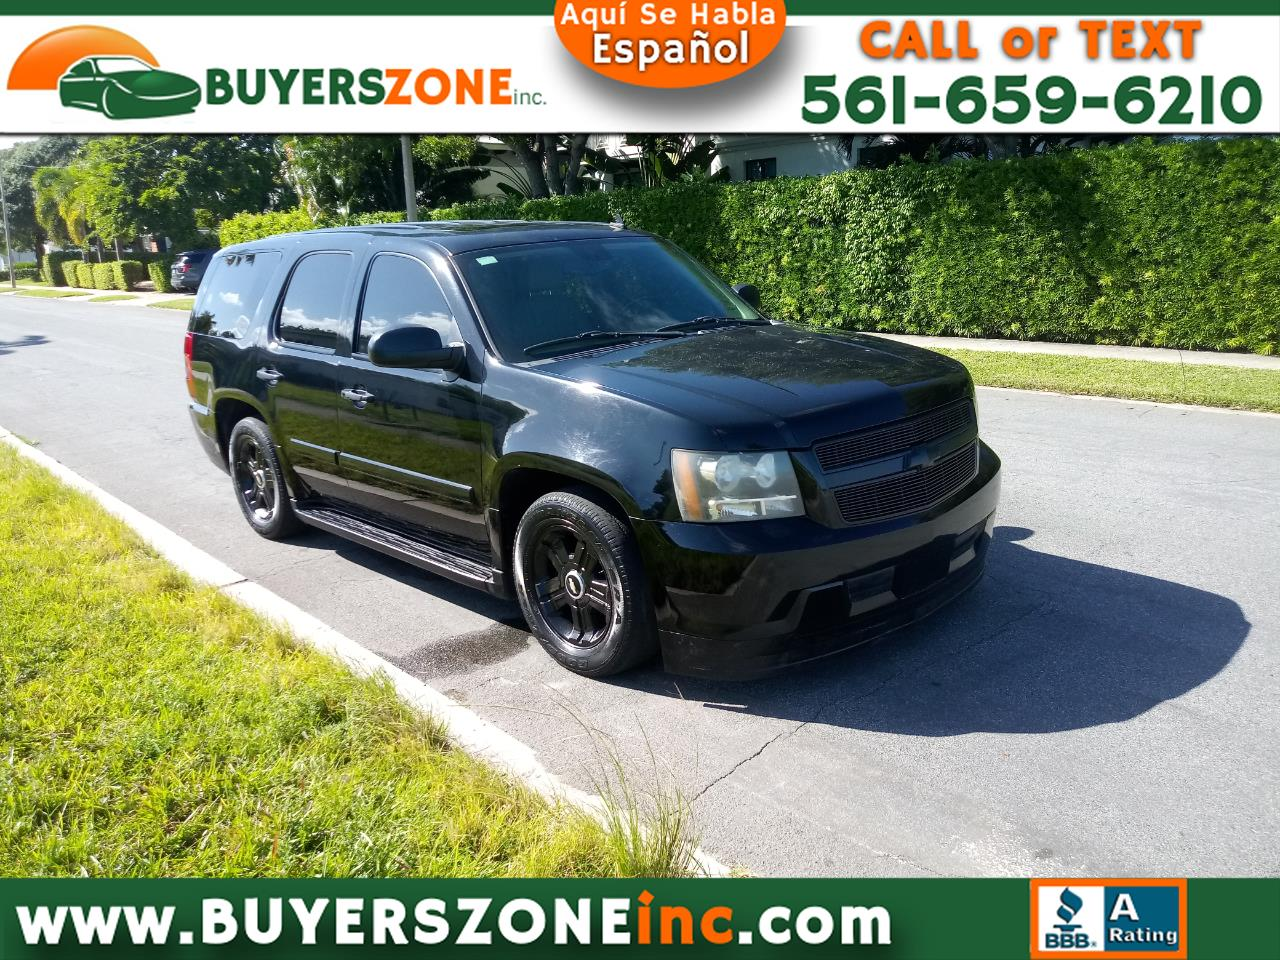 2008 Chevrolet Tahoe Hybrid 2WD 4dr